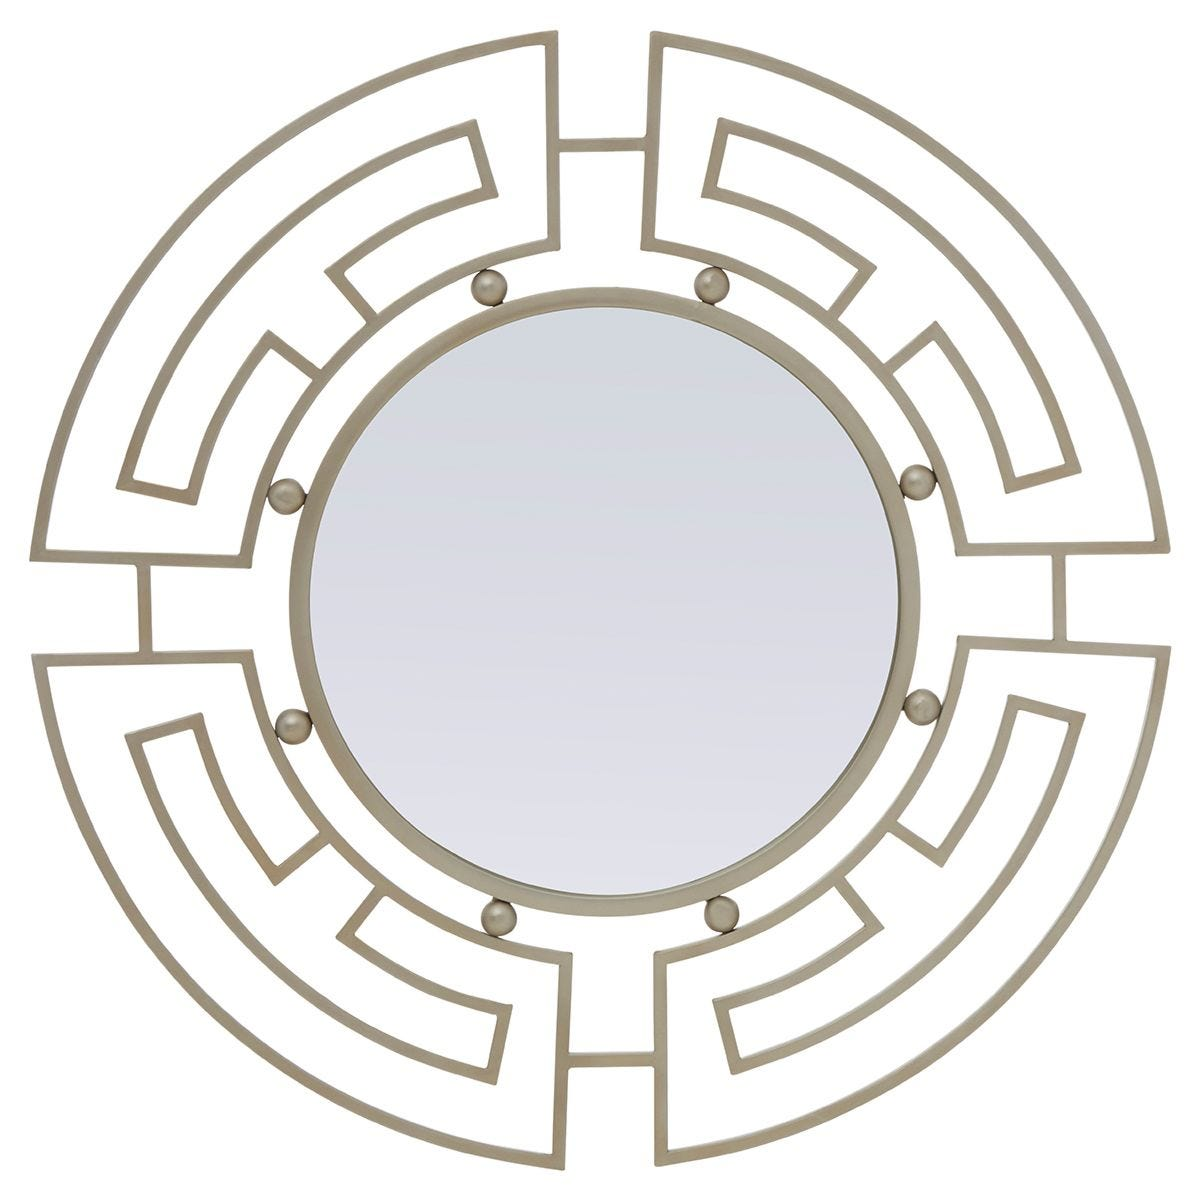 Premier Housewares Jalal Round Wall Mirror with Silver Metal Frame